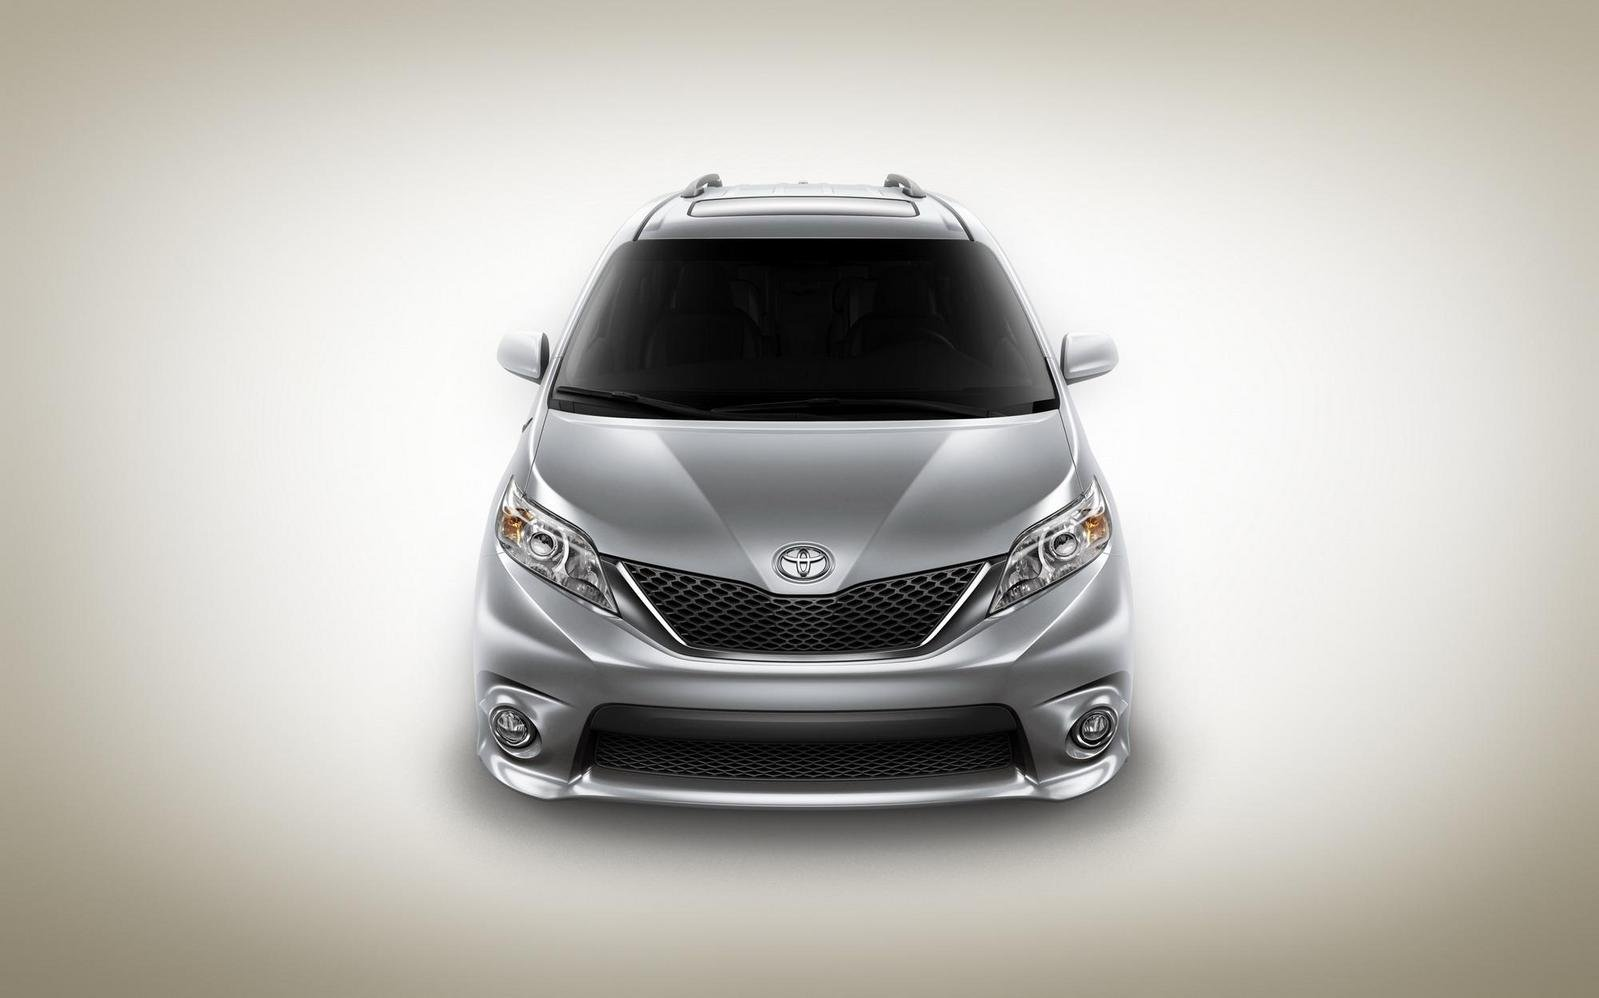 http://pictures.topspeed.com/IMG/crop/200912/2011-toyota-sienna_1600x0w.jpg